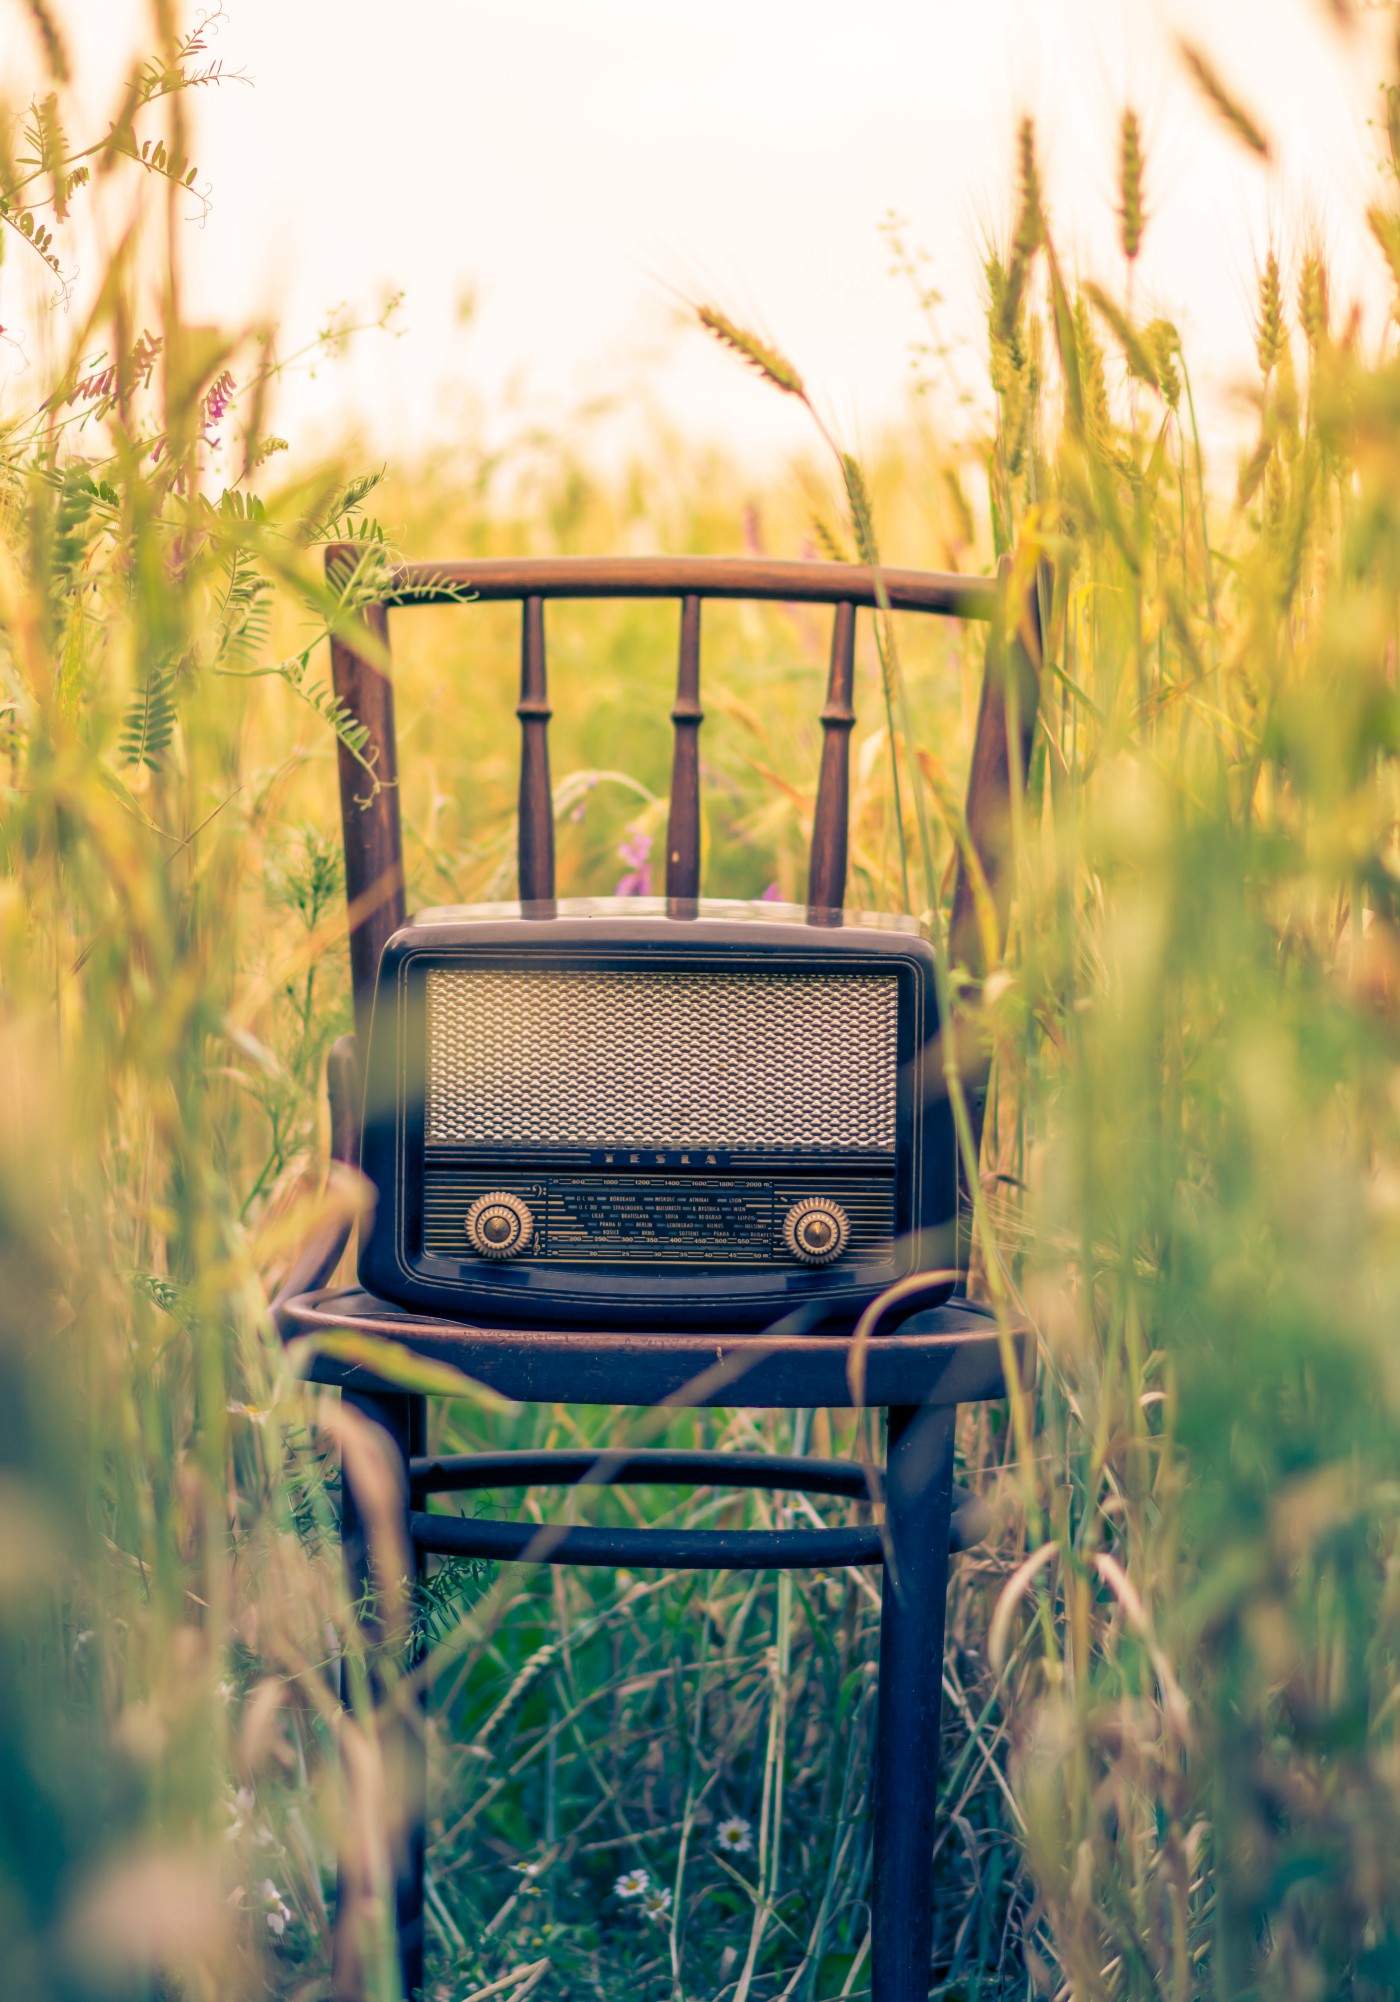 the image shows a transistor radio on a chair in a field